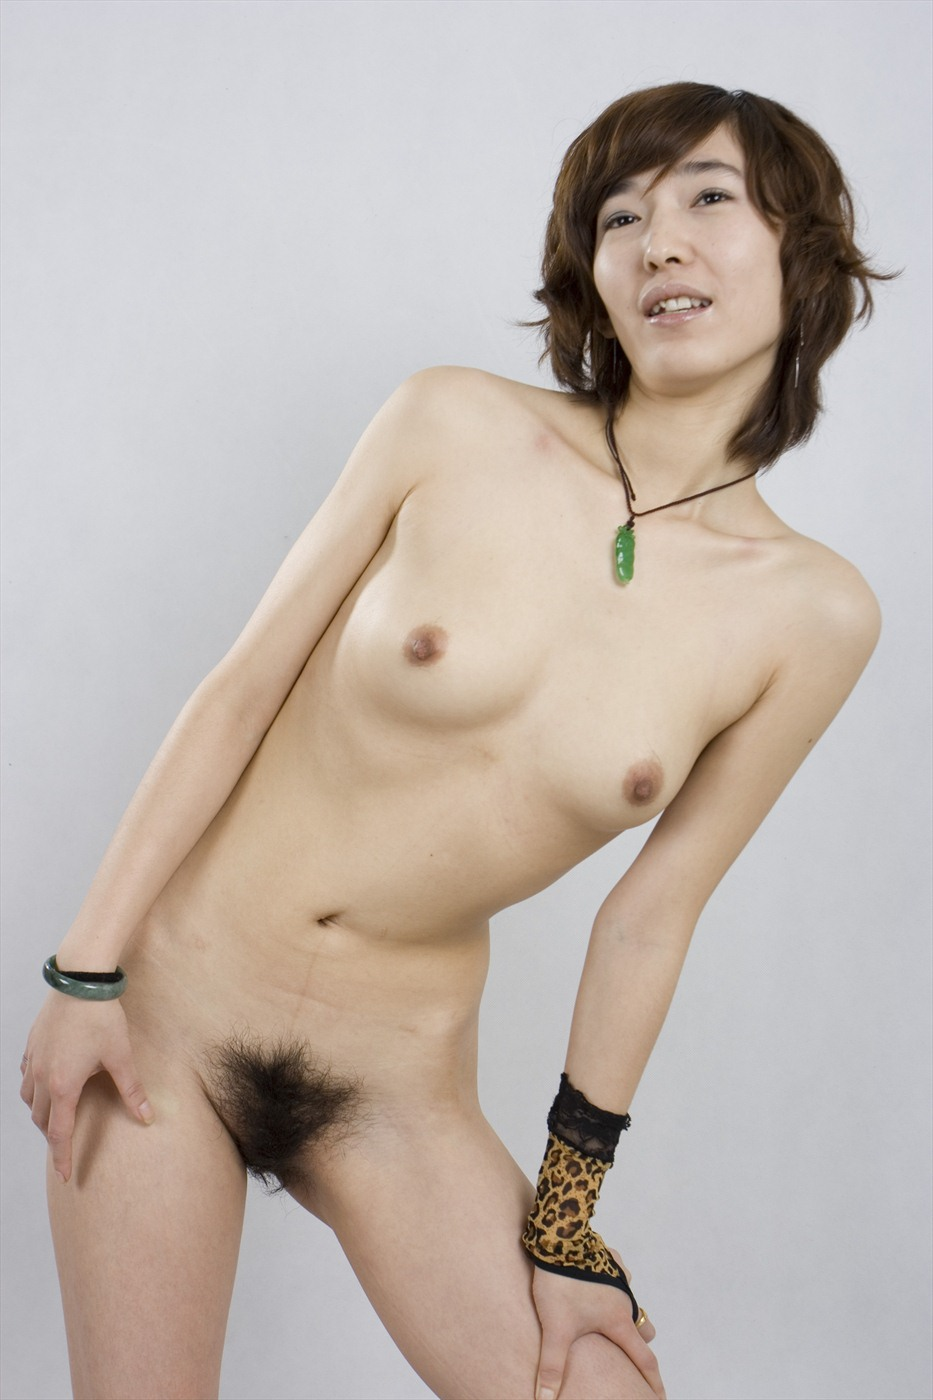 blonde assyoung nude picture